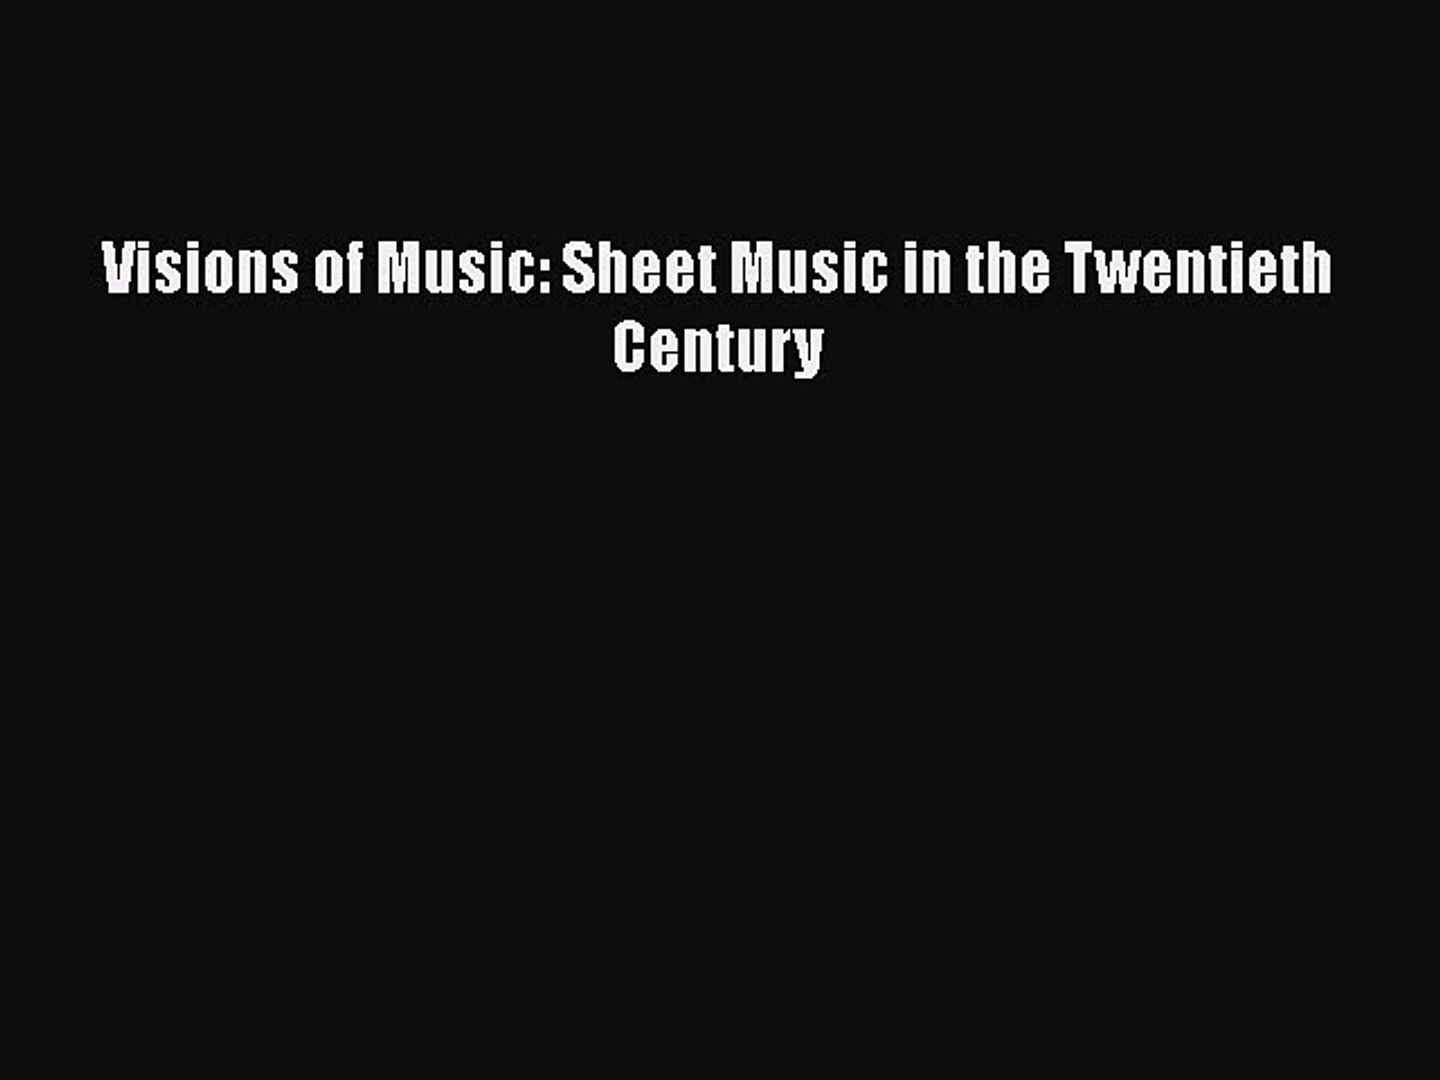 Download Visions of Music: Sheet Music in the Twentieth Century  Read Online